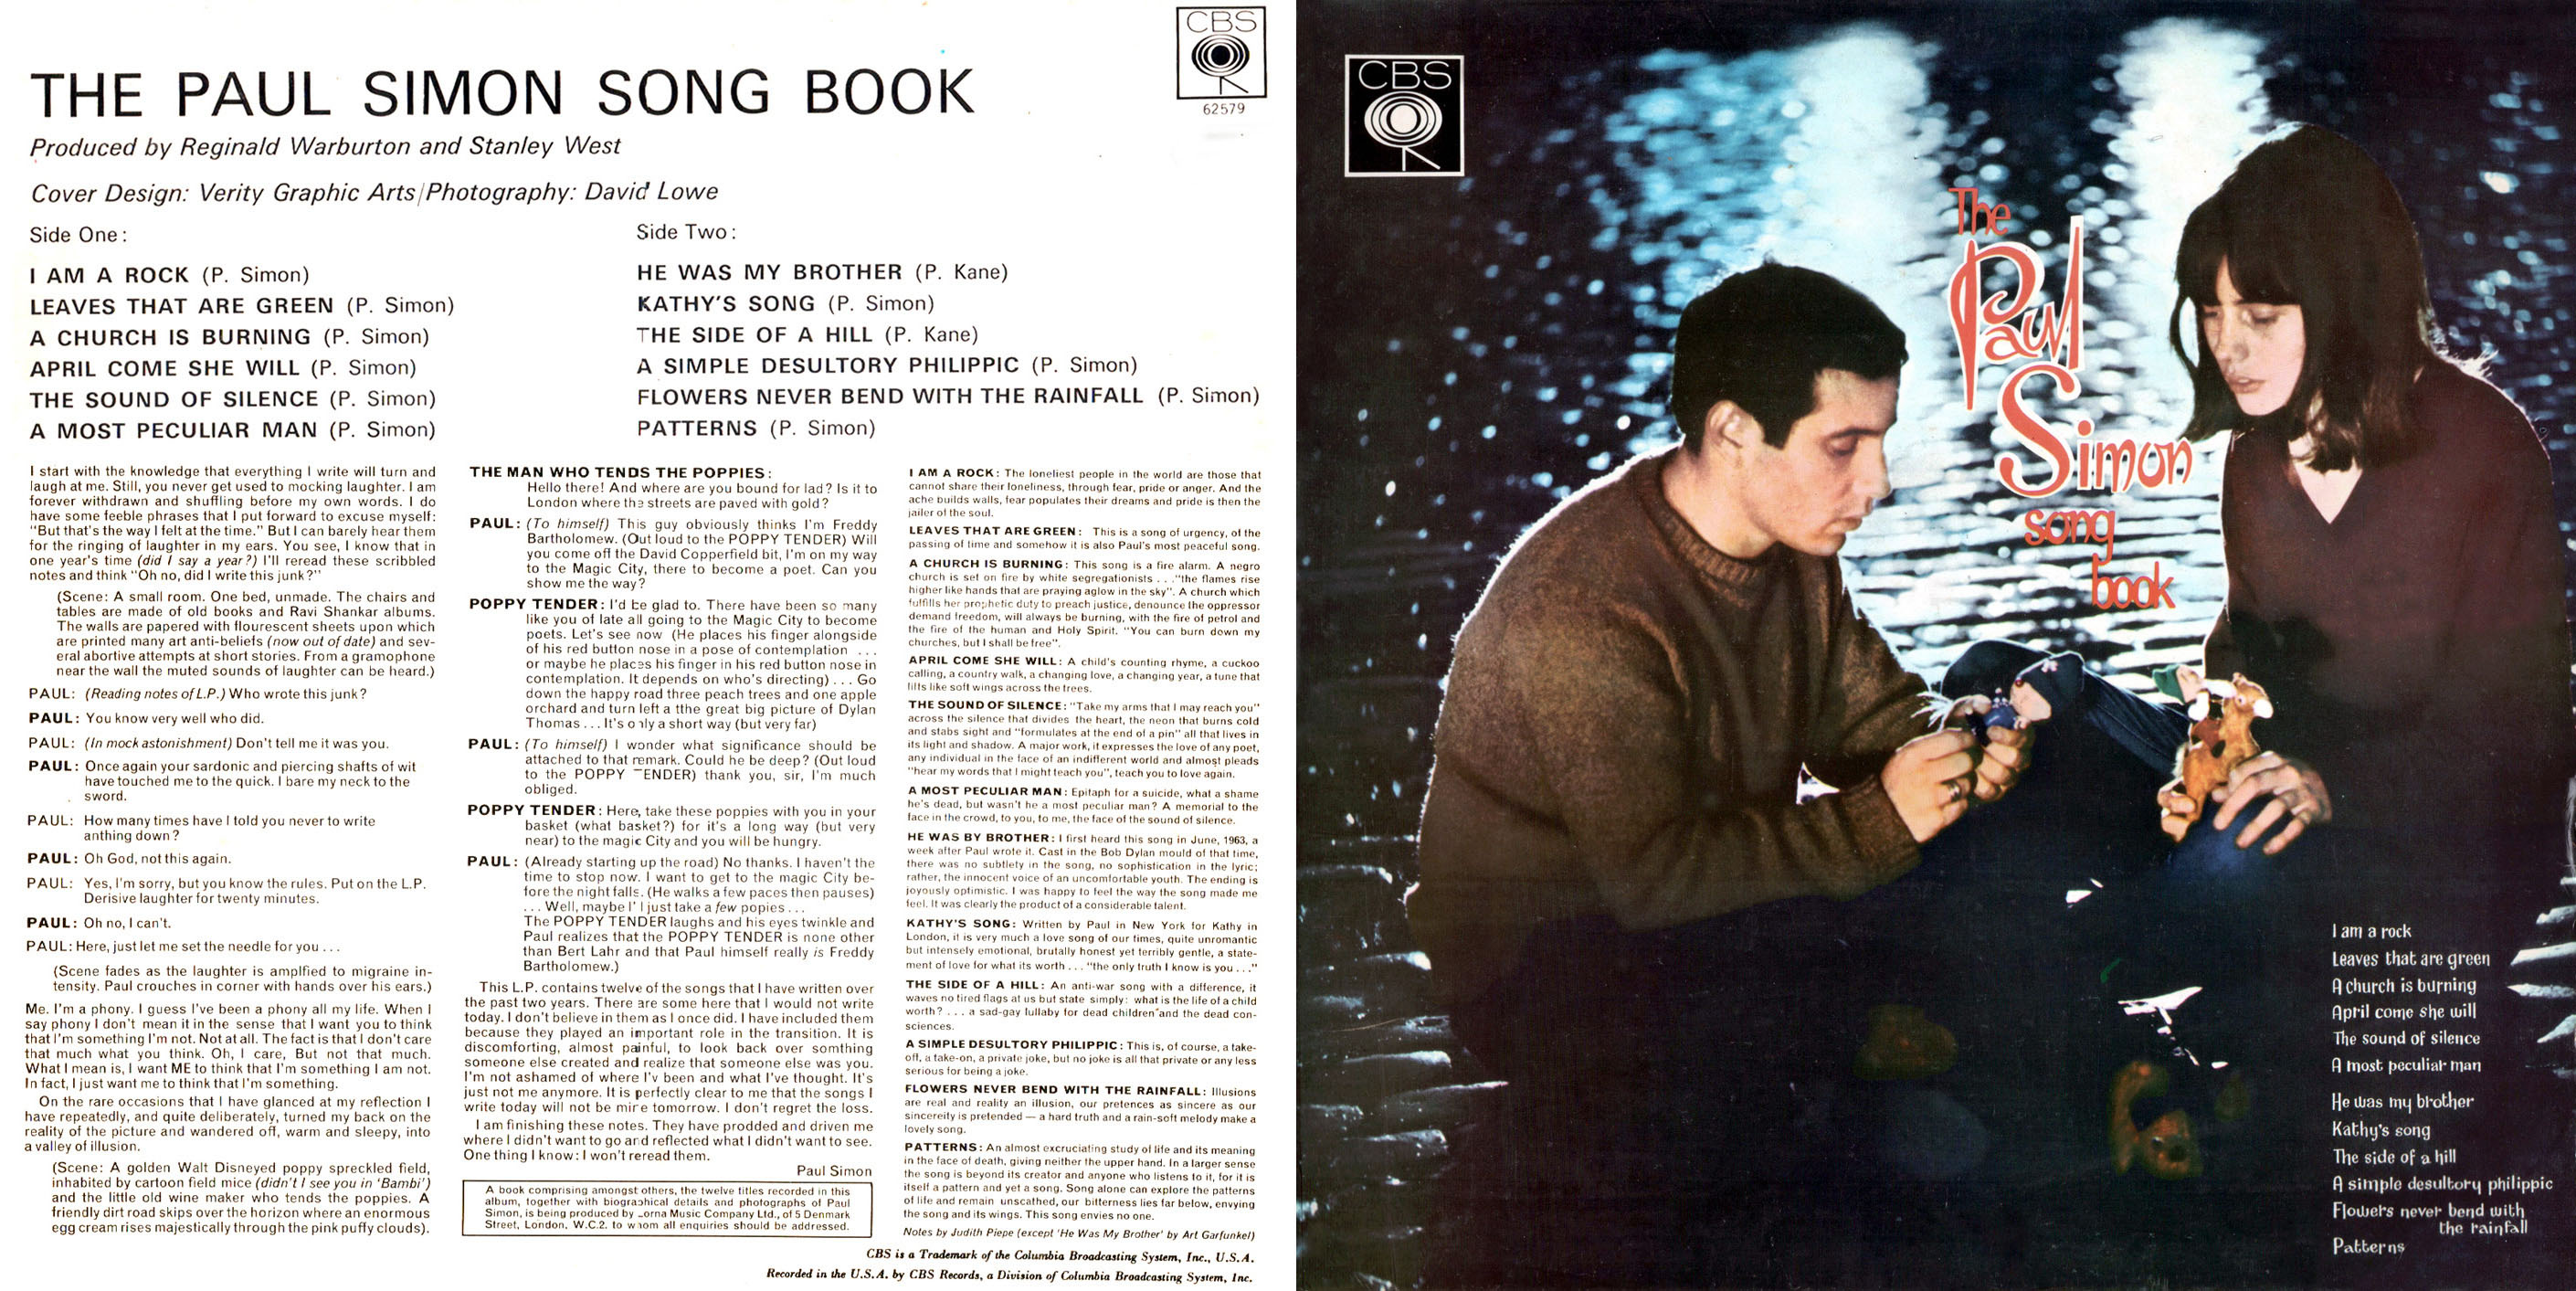 Book Of Love Album Cover : The paul simon songbook moss island sounds